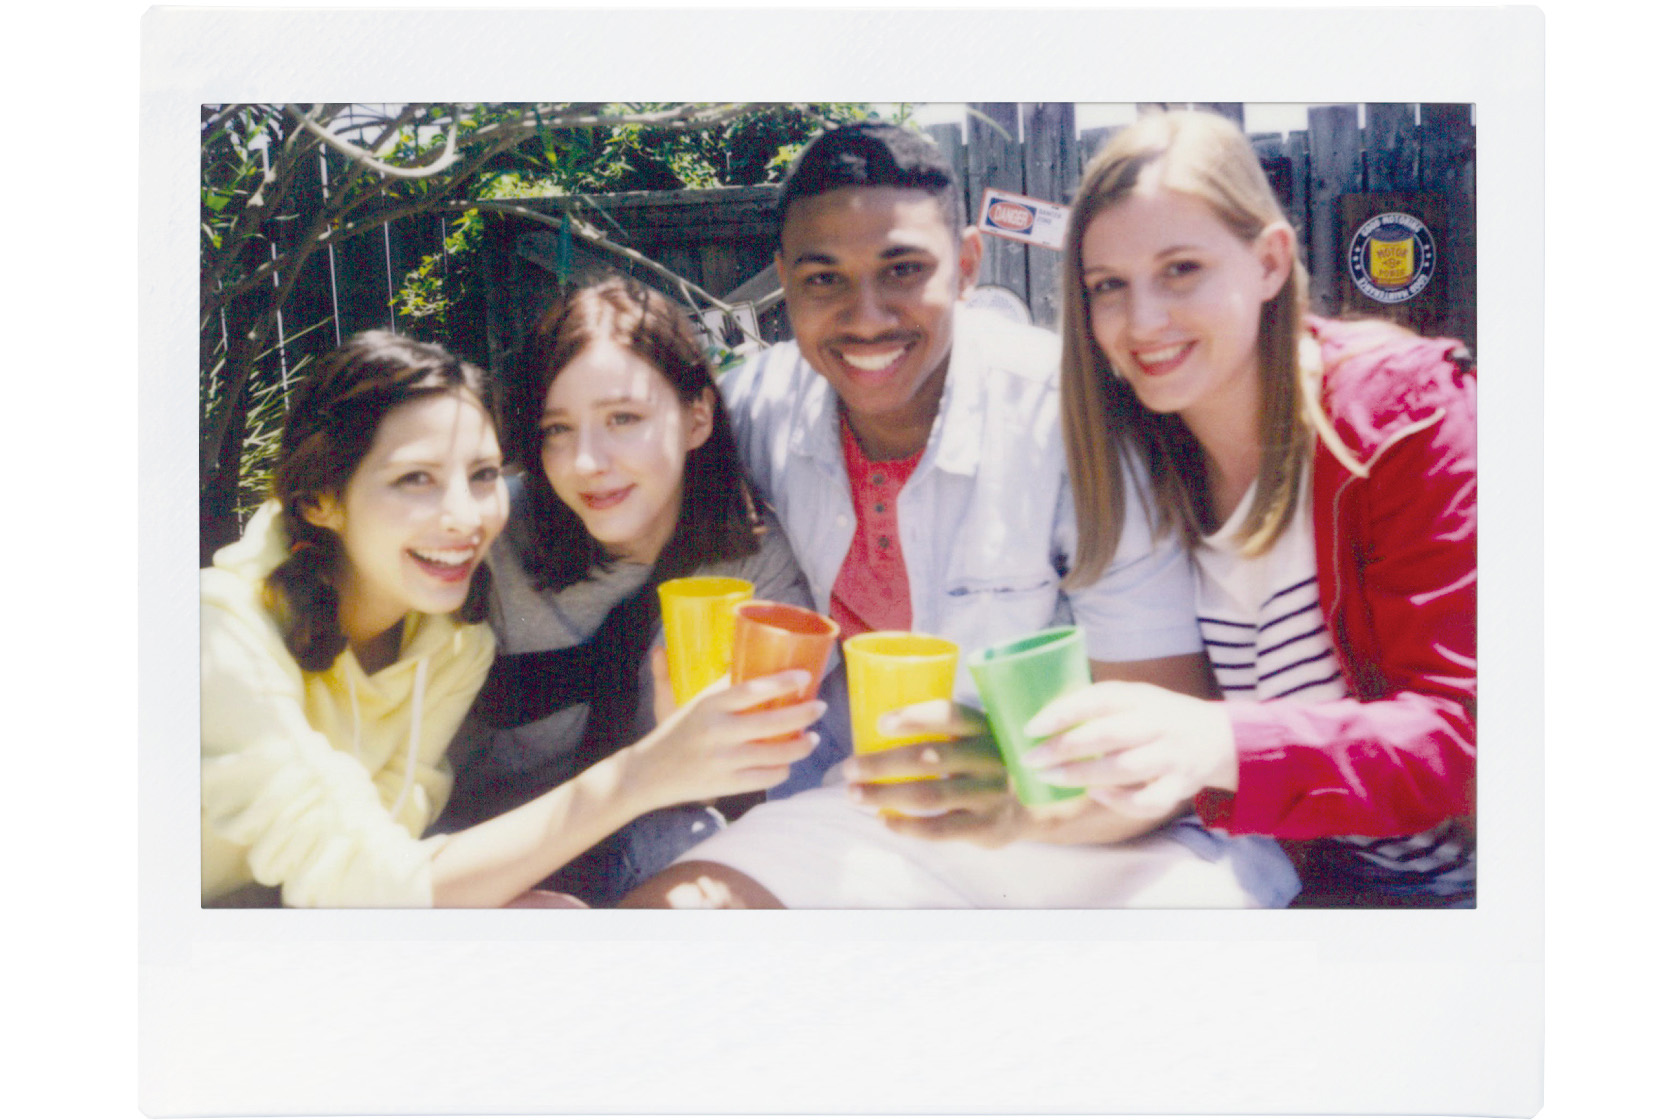 Image of a photo of four friends at outdoor party